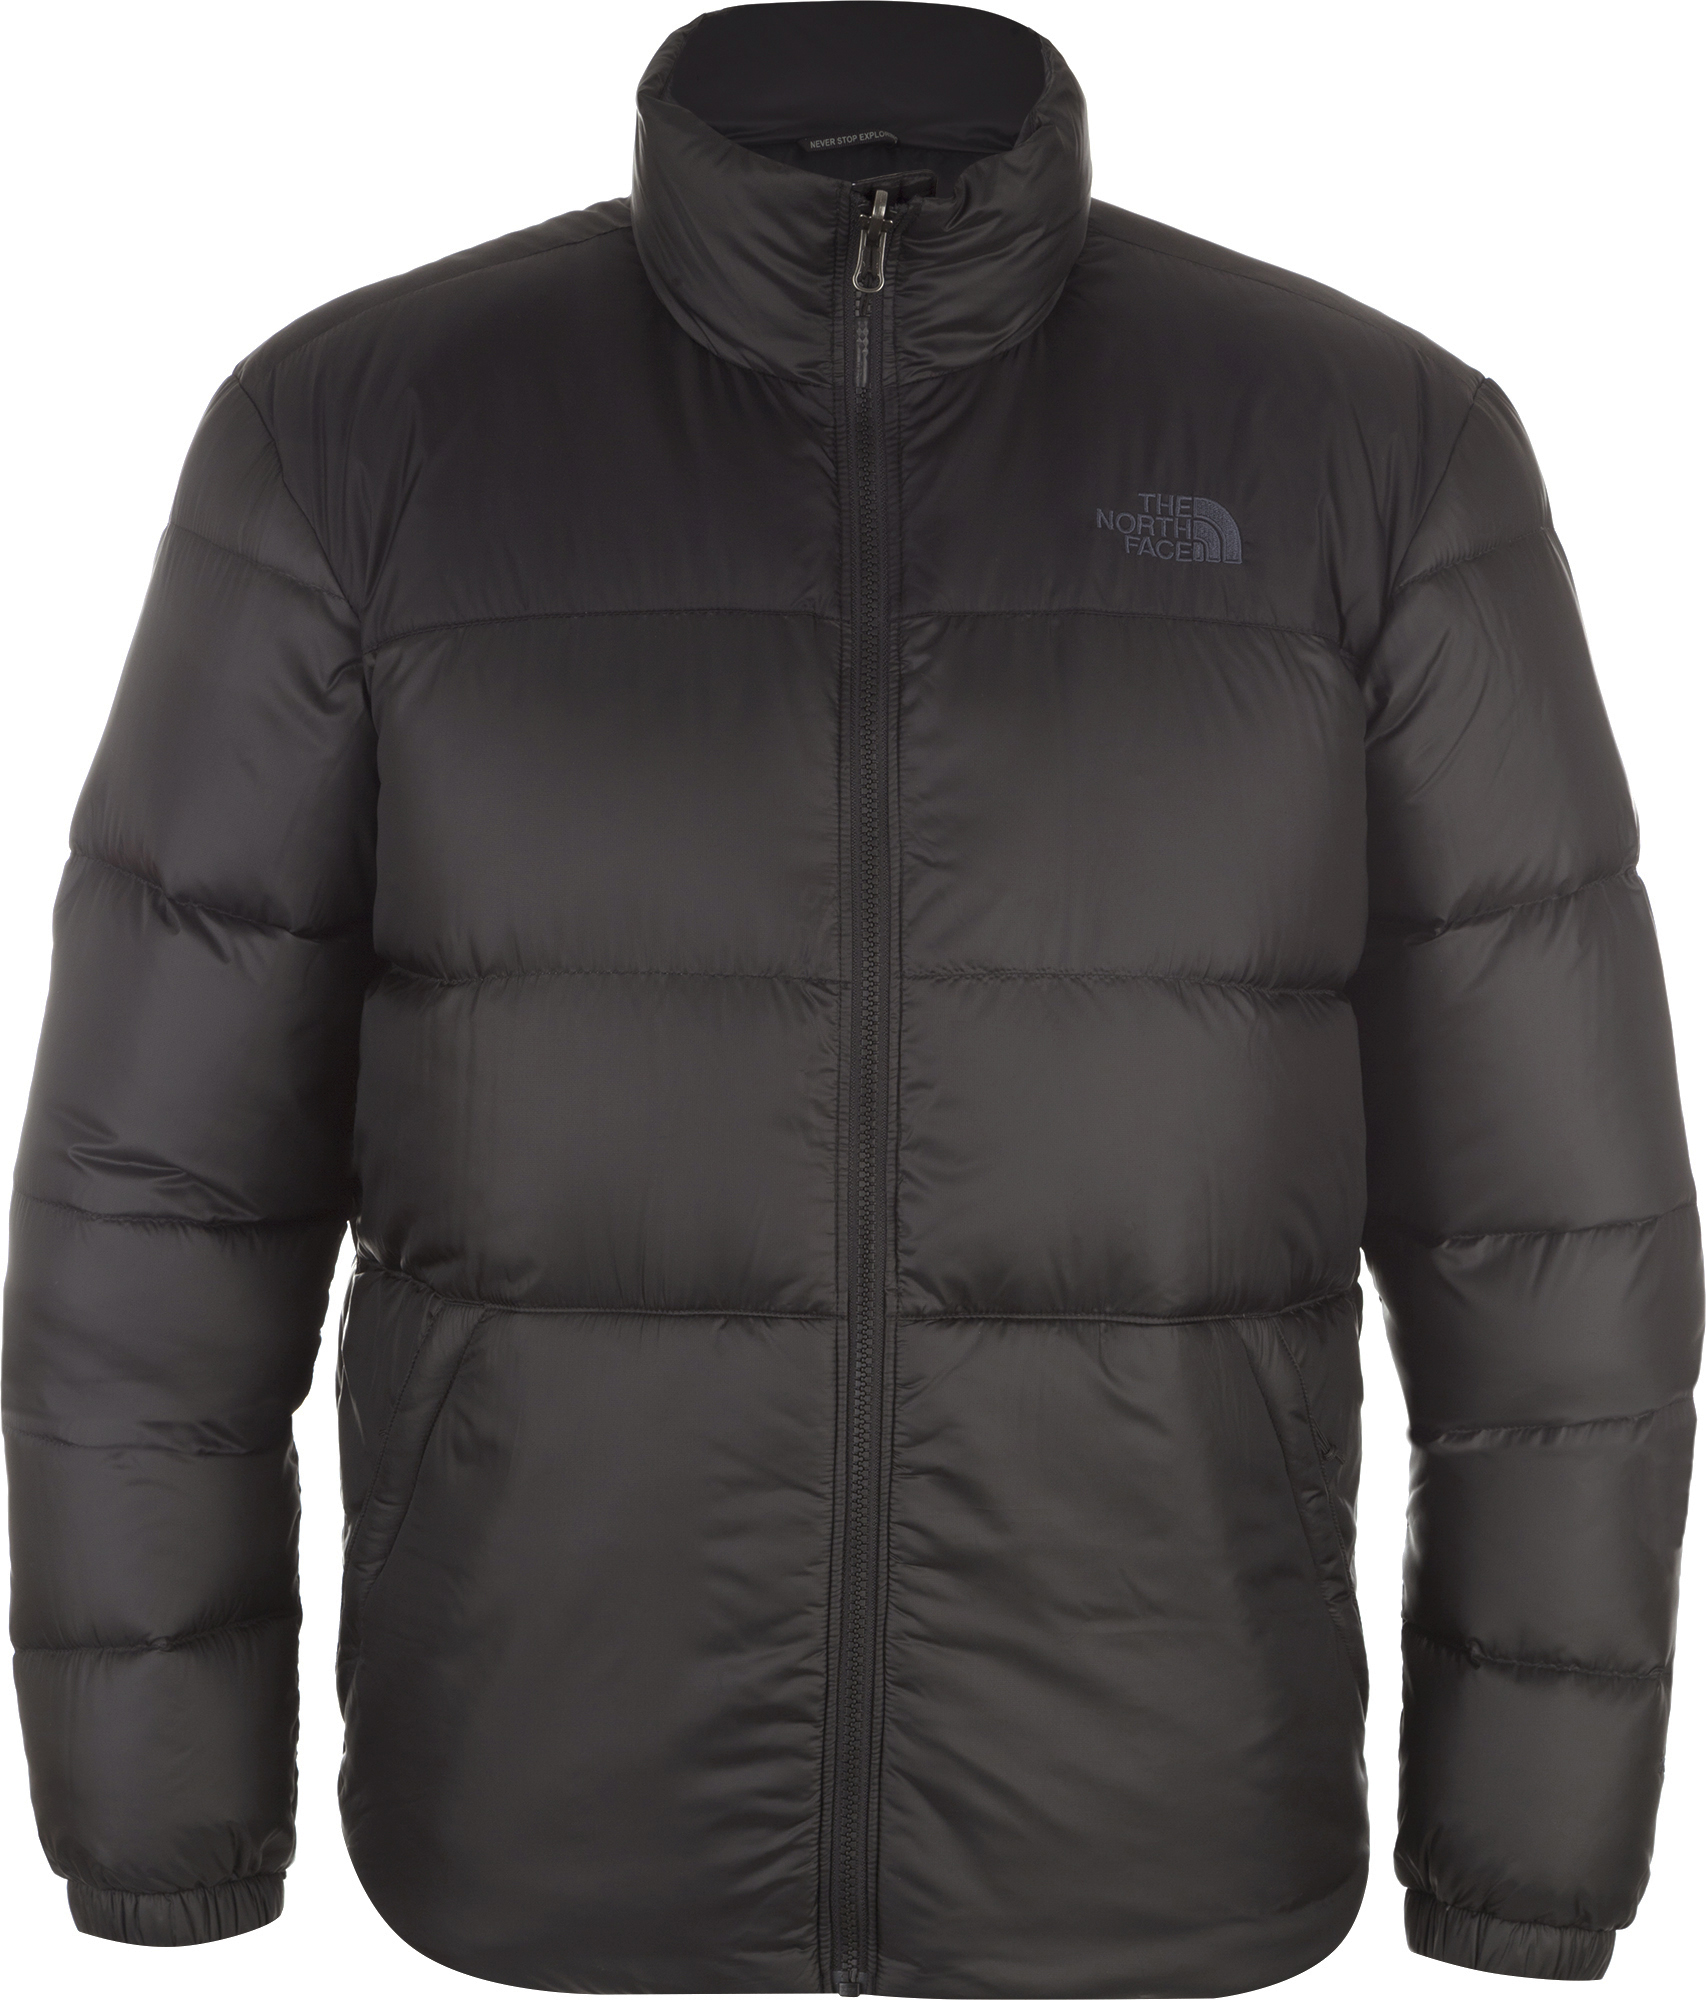 The North Face Куртка пуховая мужская The North Face Men's Nuptse III, размер 52 тапочки the north face the north face nuptse tent mule iii женские